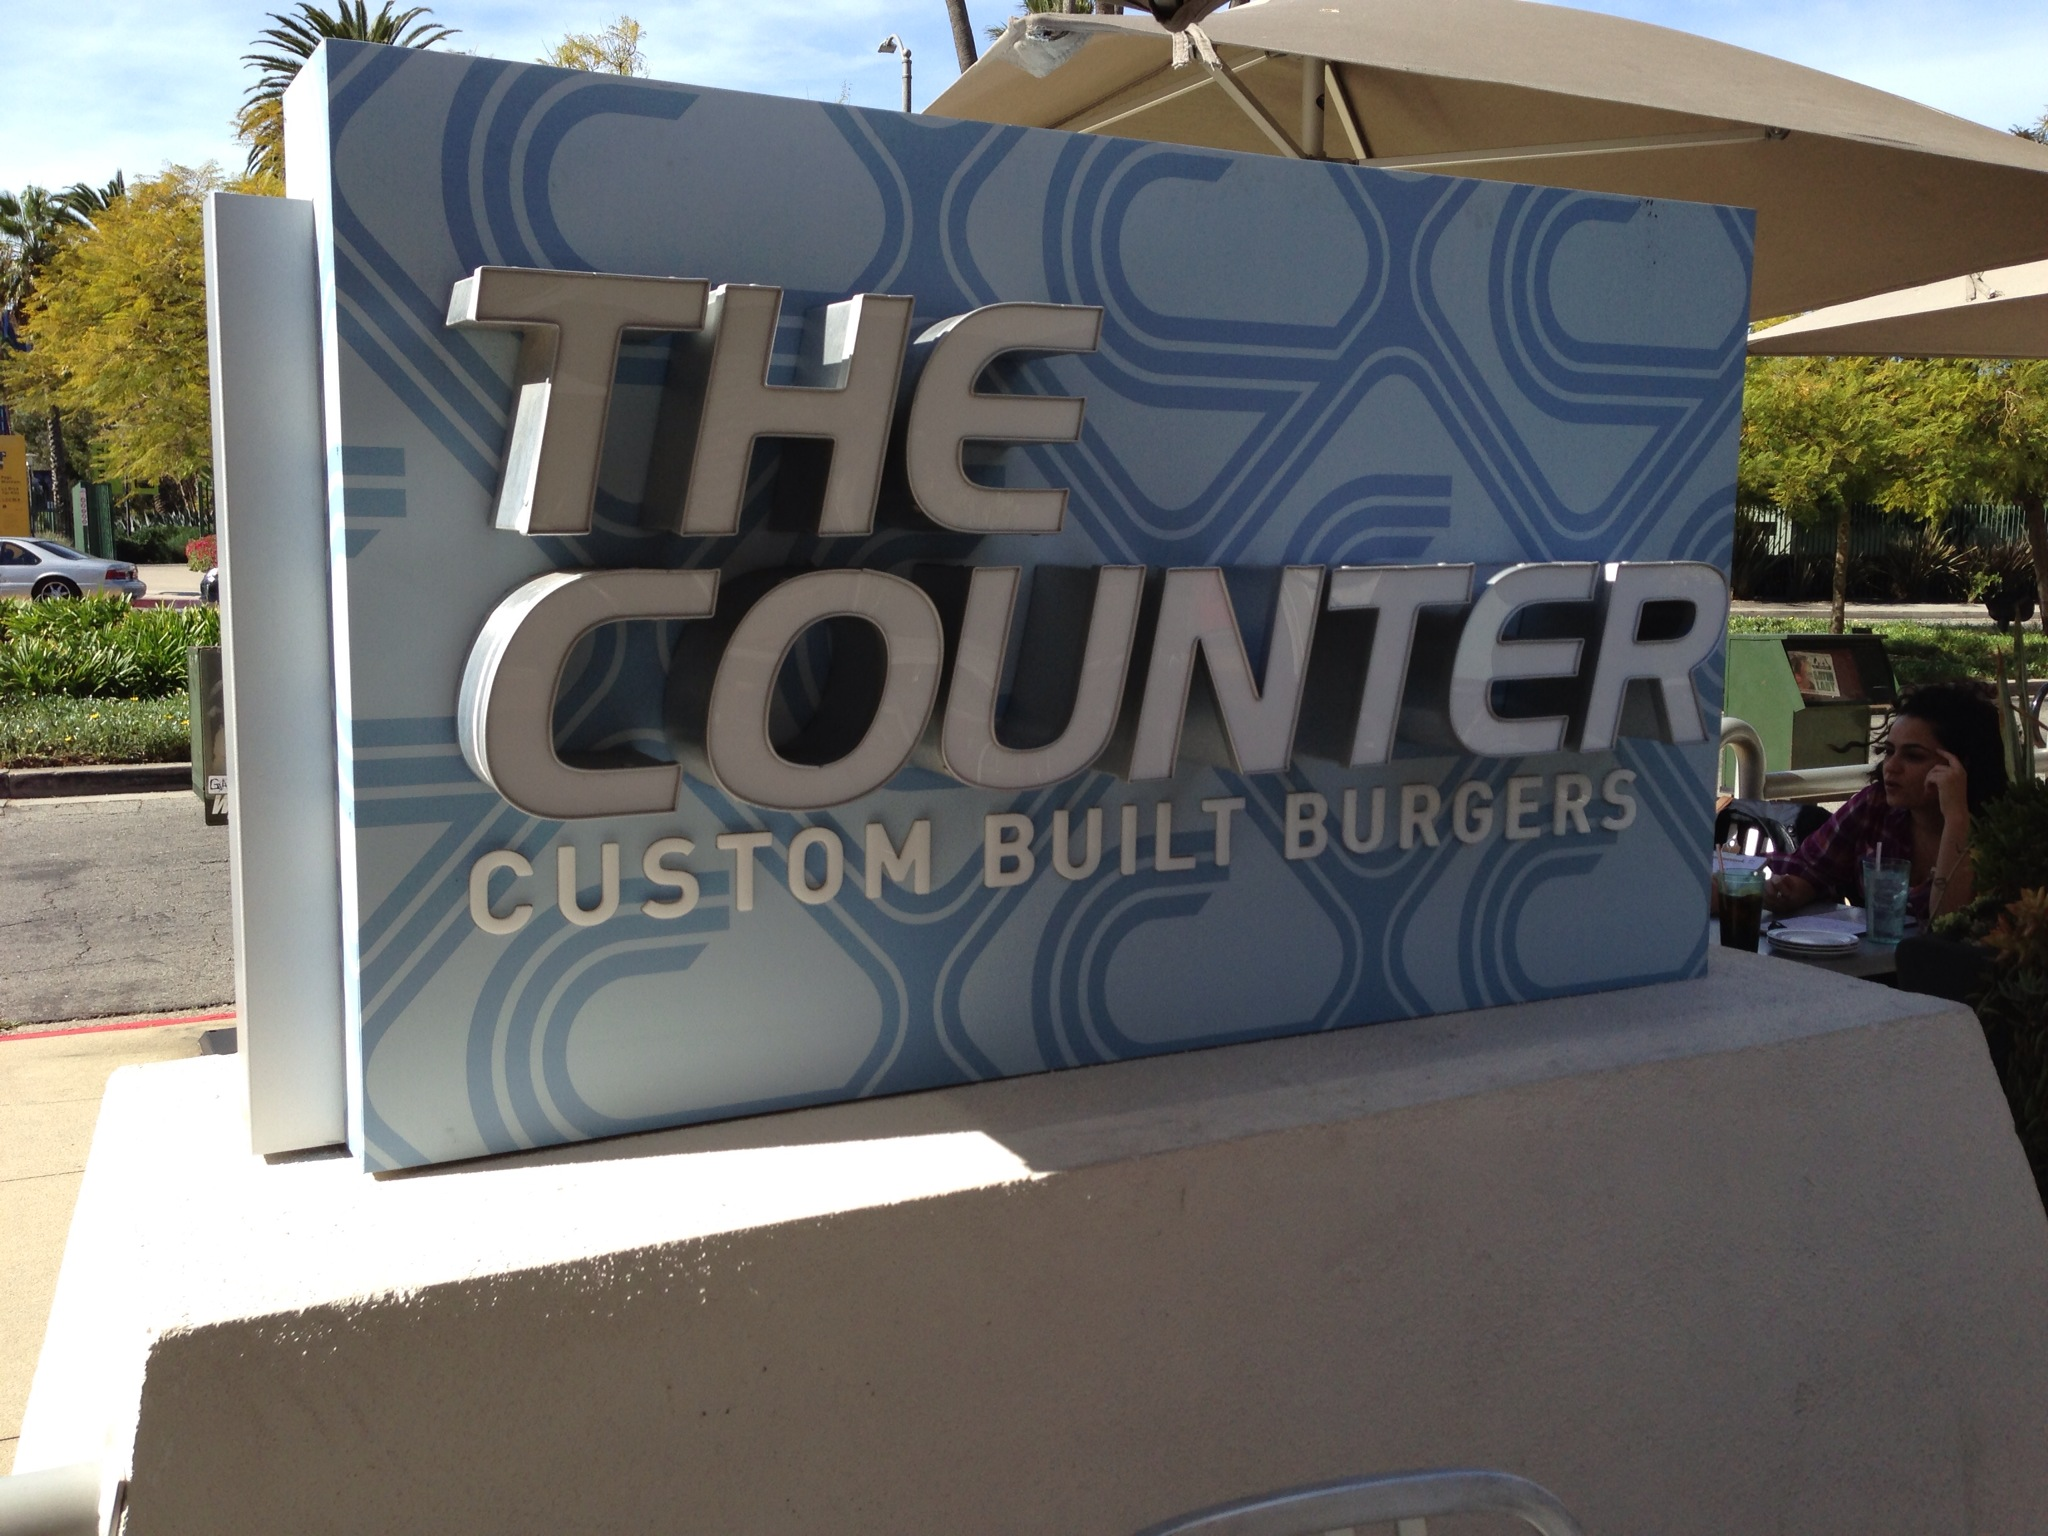 The Counter, a great lunch option that's a two minute walk from the Page.